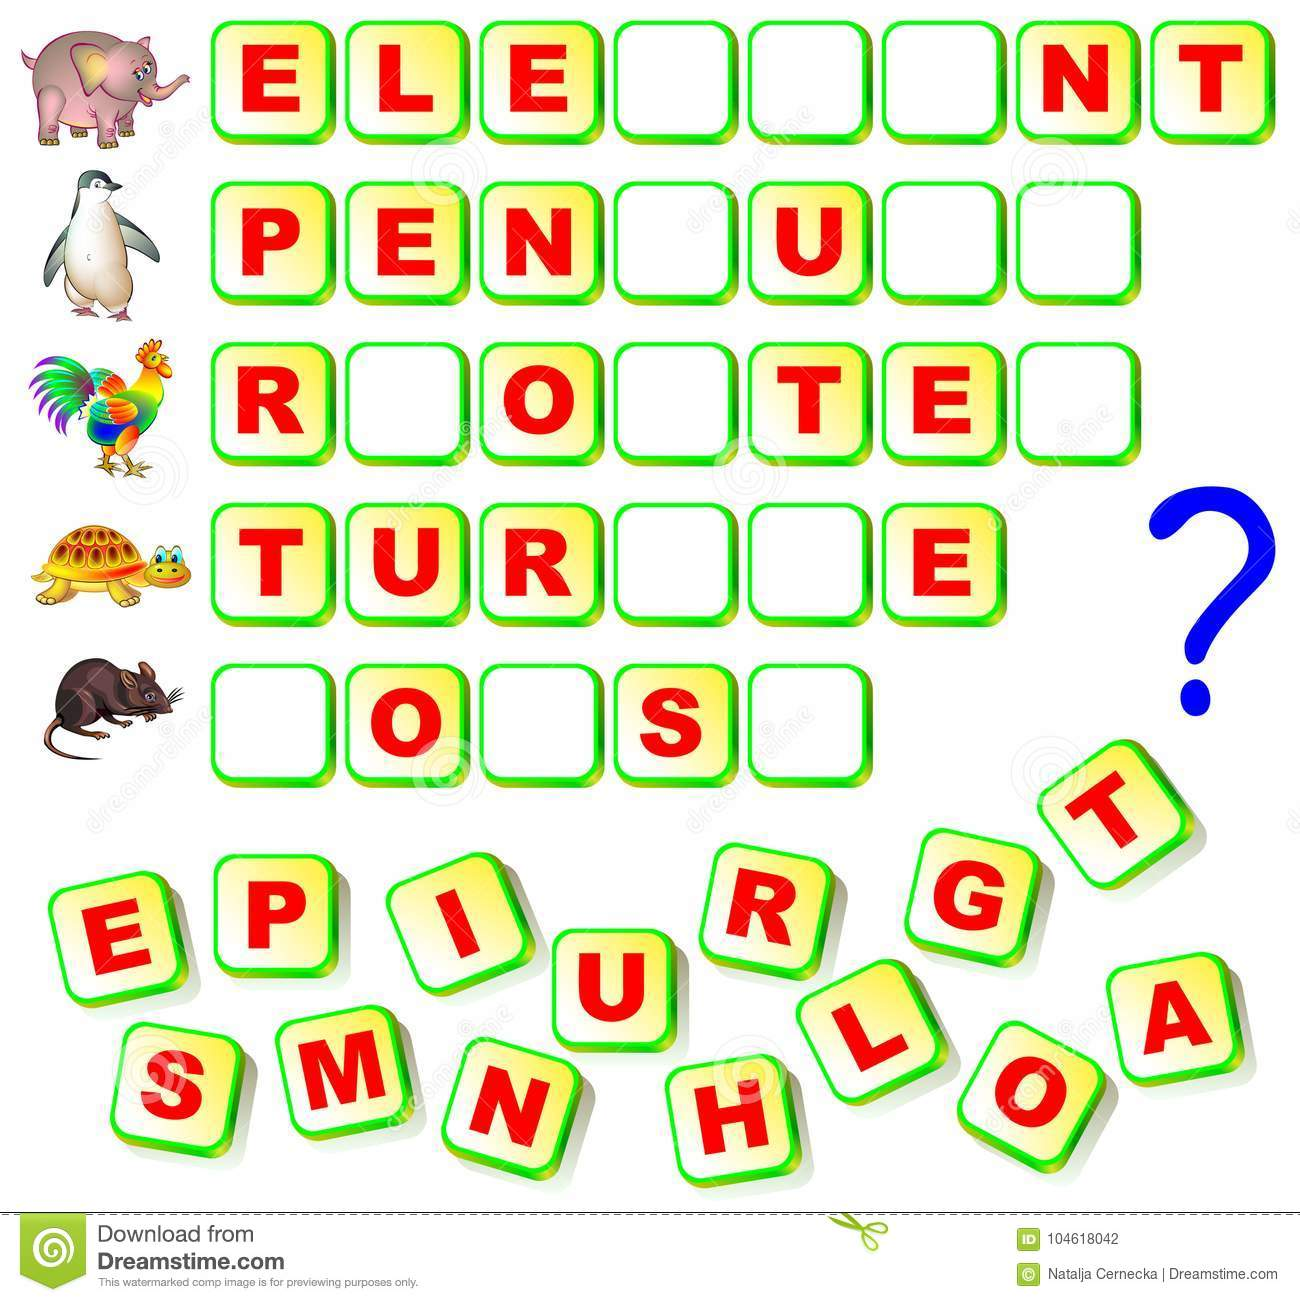 Worksheet For Children With Exercise For Study English Words. Find ...